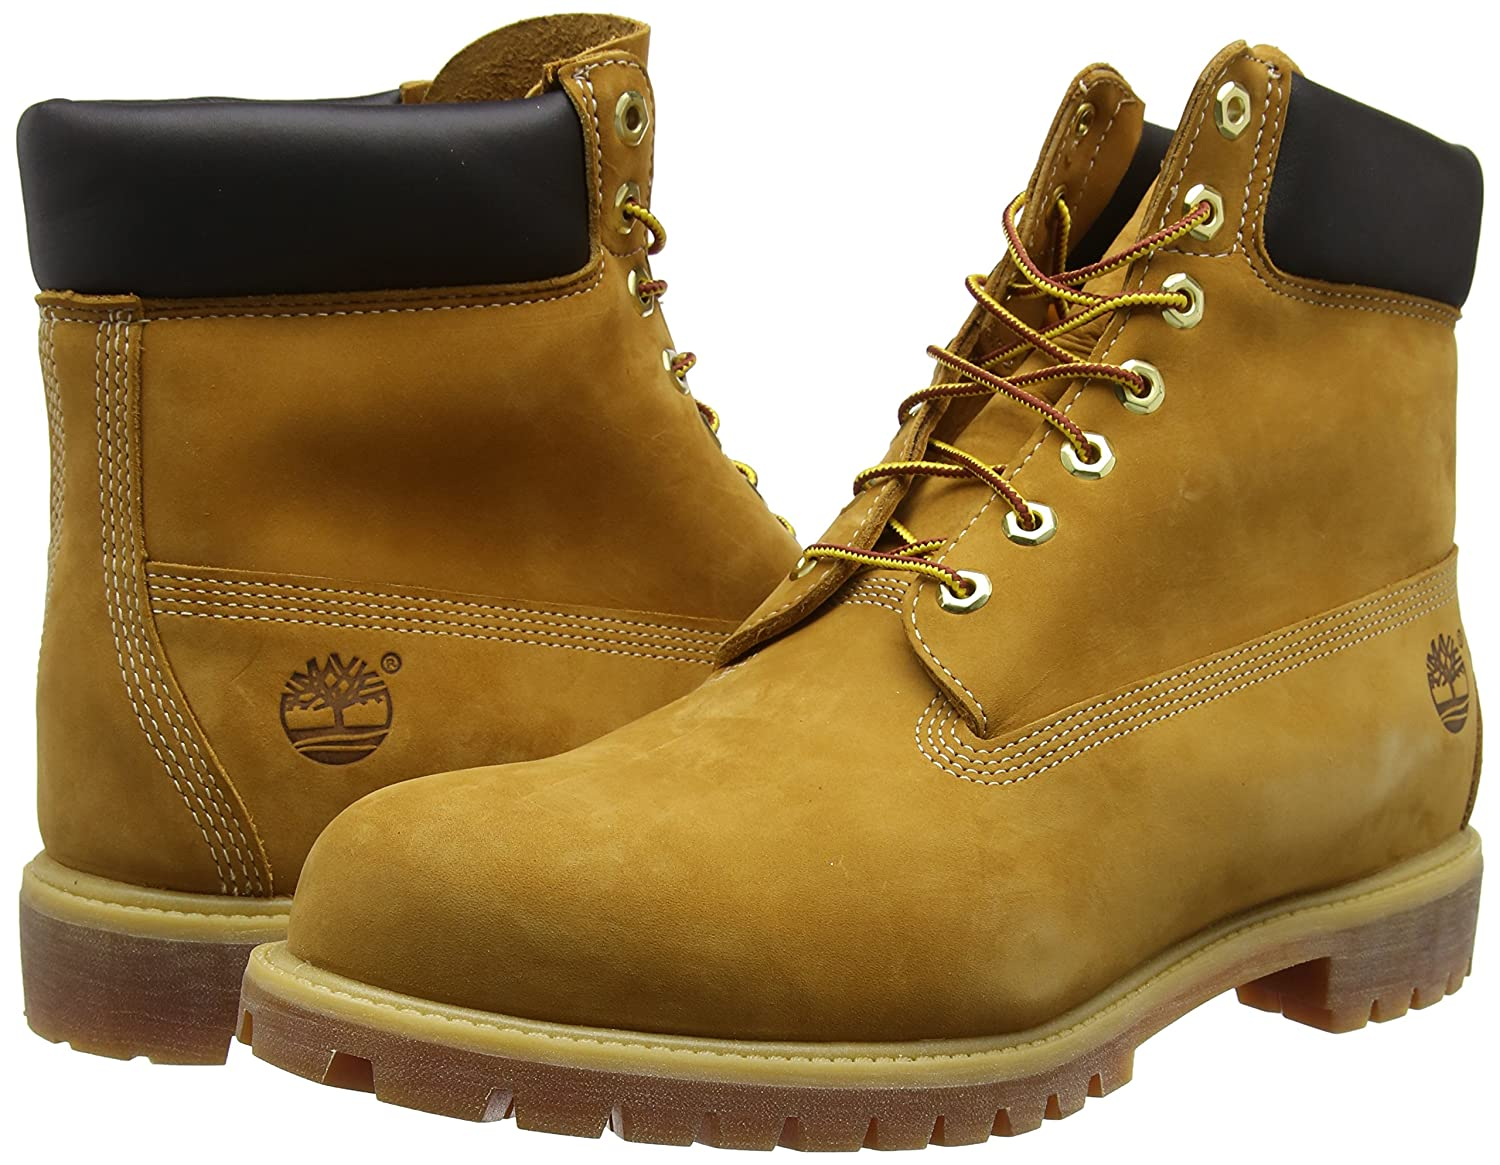 Bottes Timberland Taille 9 Hommes 77FH3